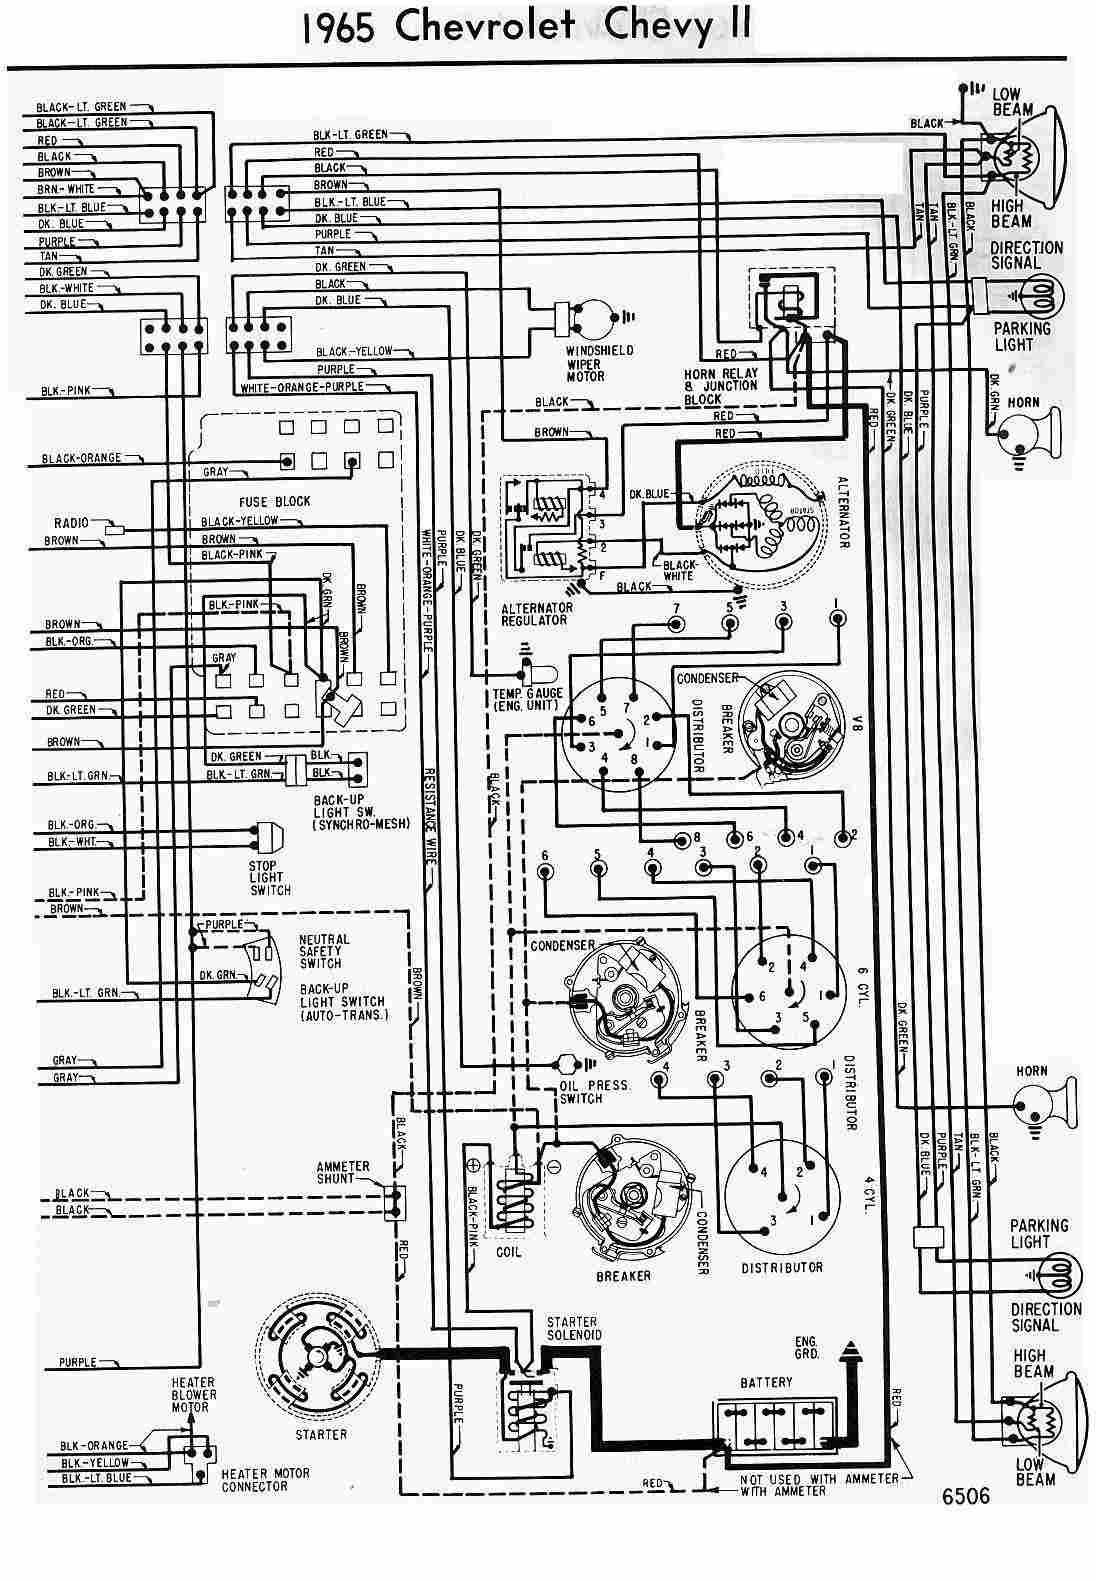 Chevrolet Car Manuals Wiring Diagrams Pdf Fault Codes 97 C1500 Under Dash Harness Download